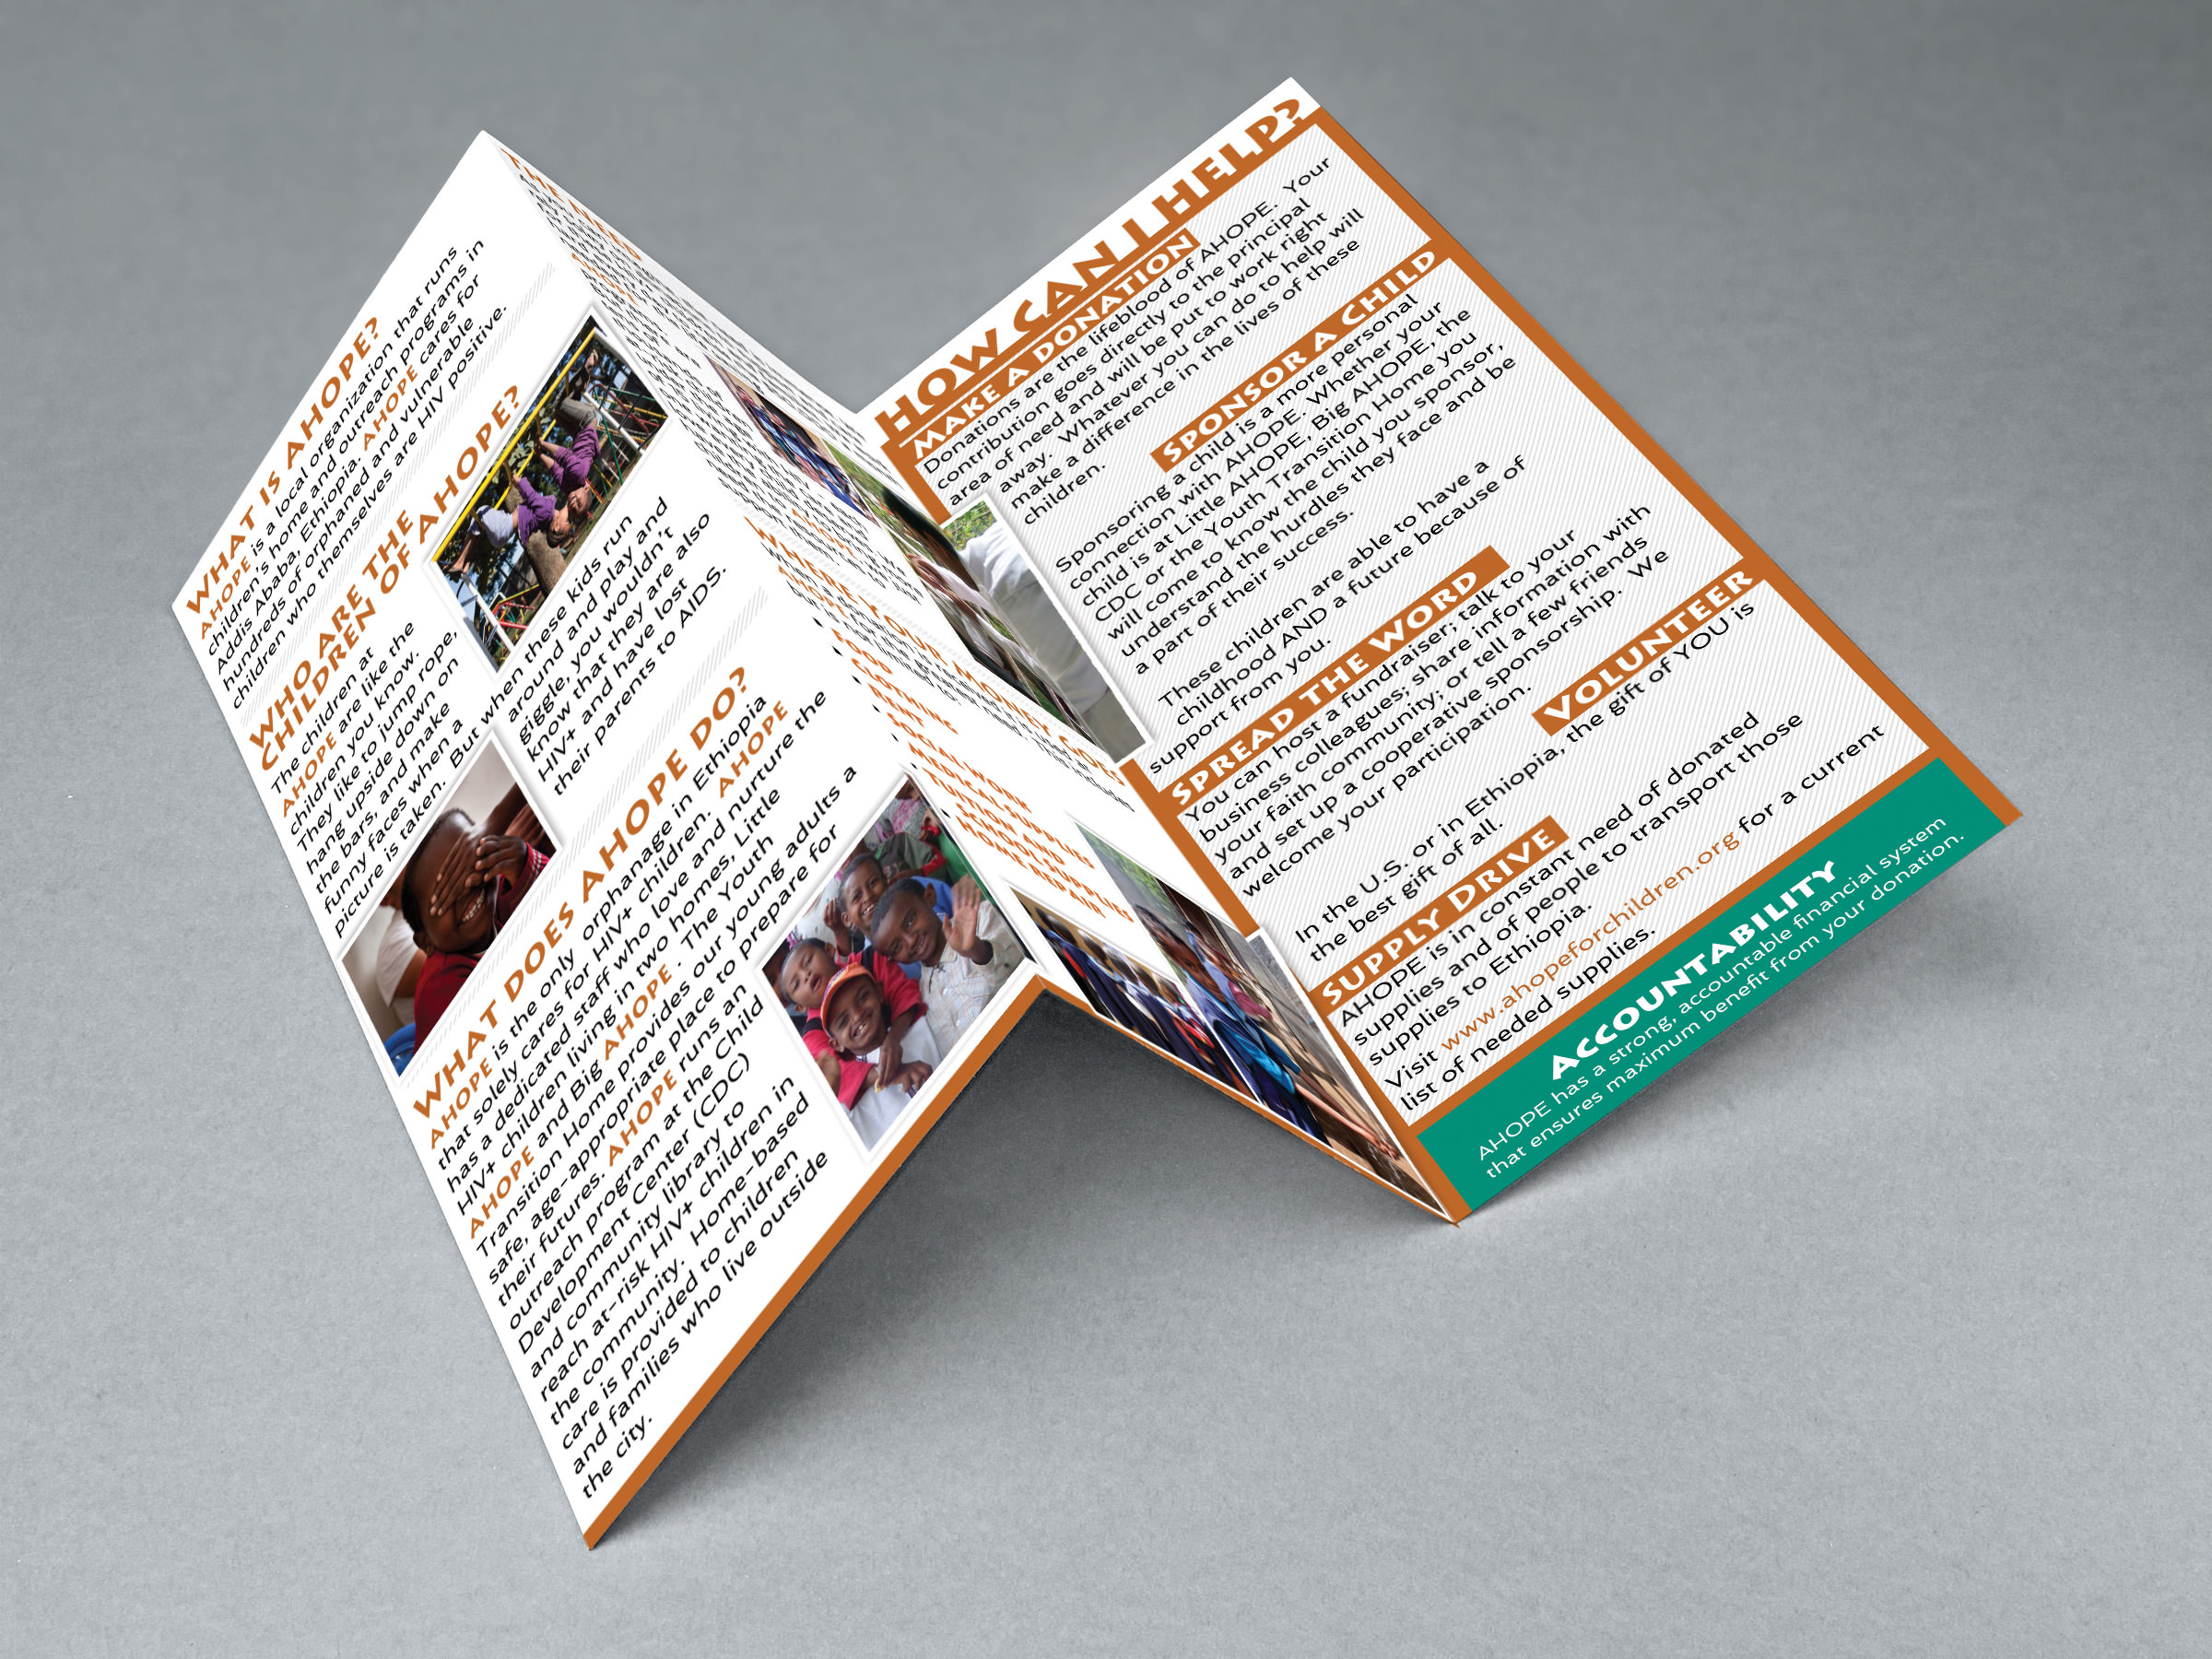 AHOPE for Children Brochure